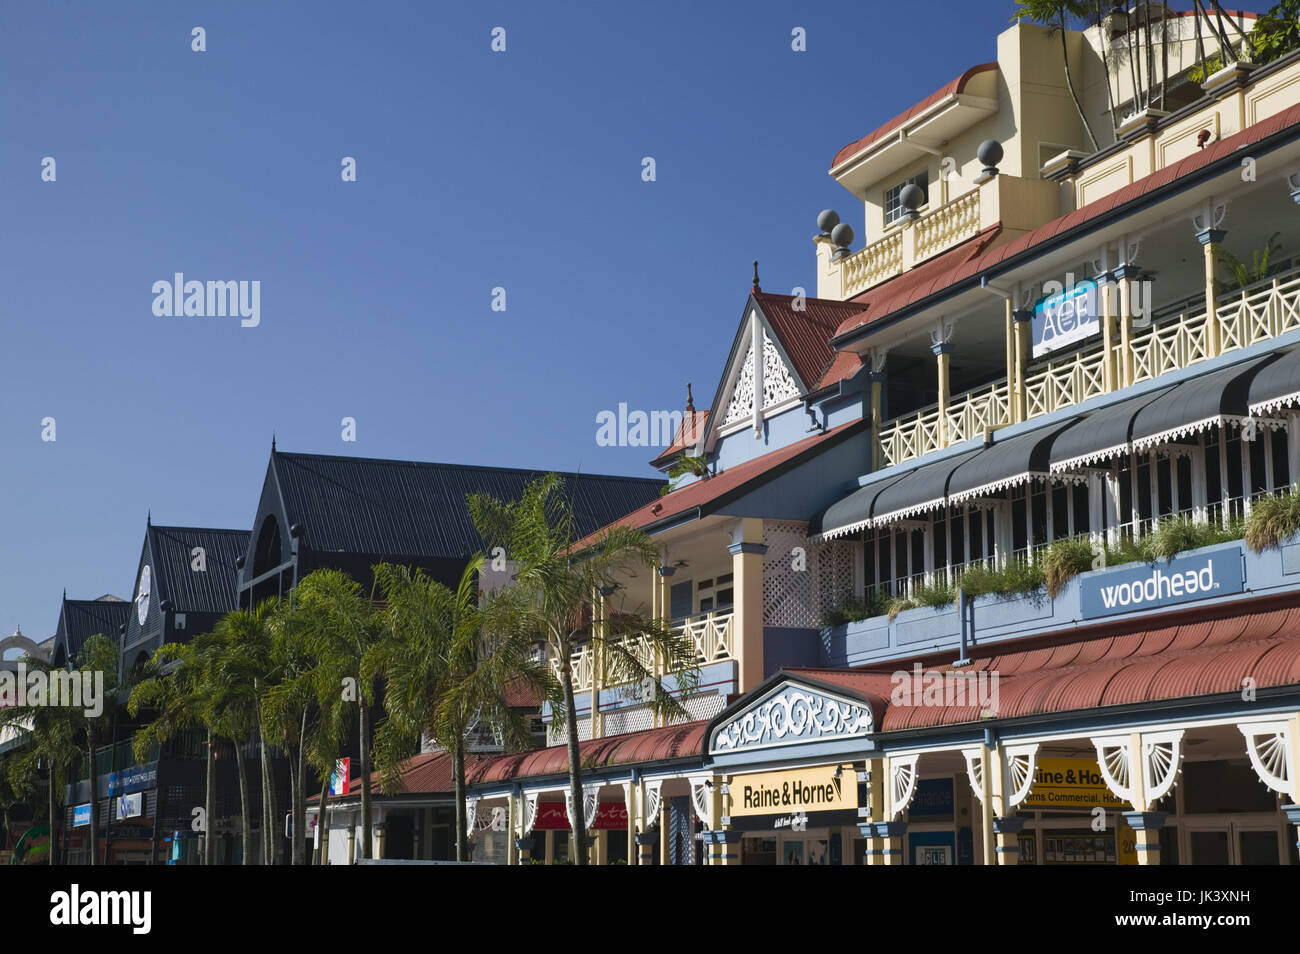 Australia, Queensland, North Coast, Cairns, Detail of The Village Complex, Stock Photo